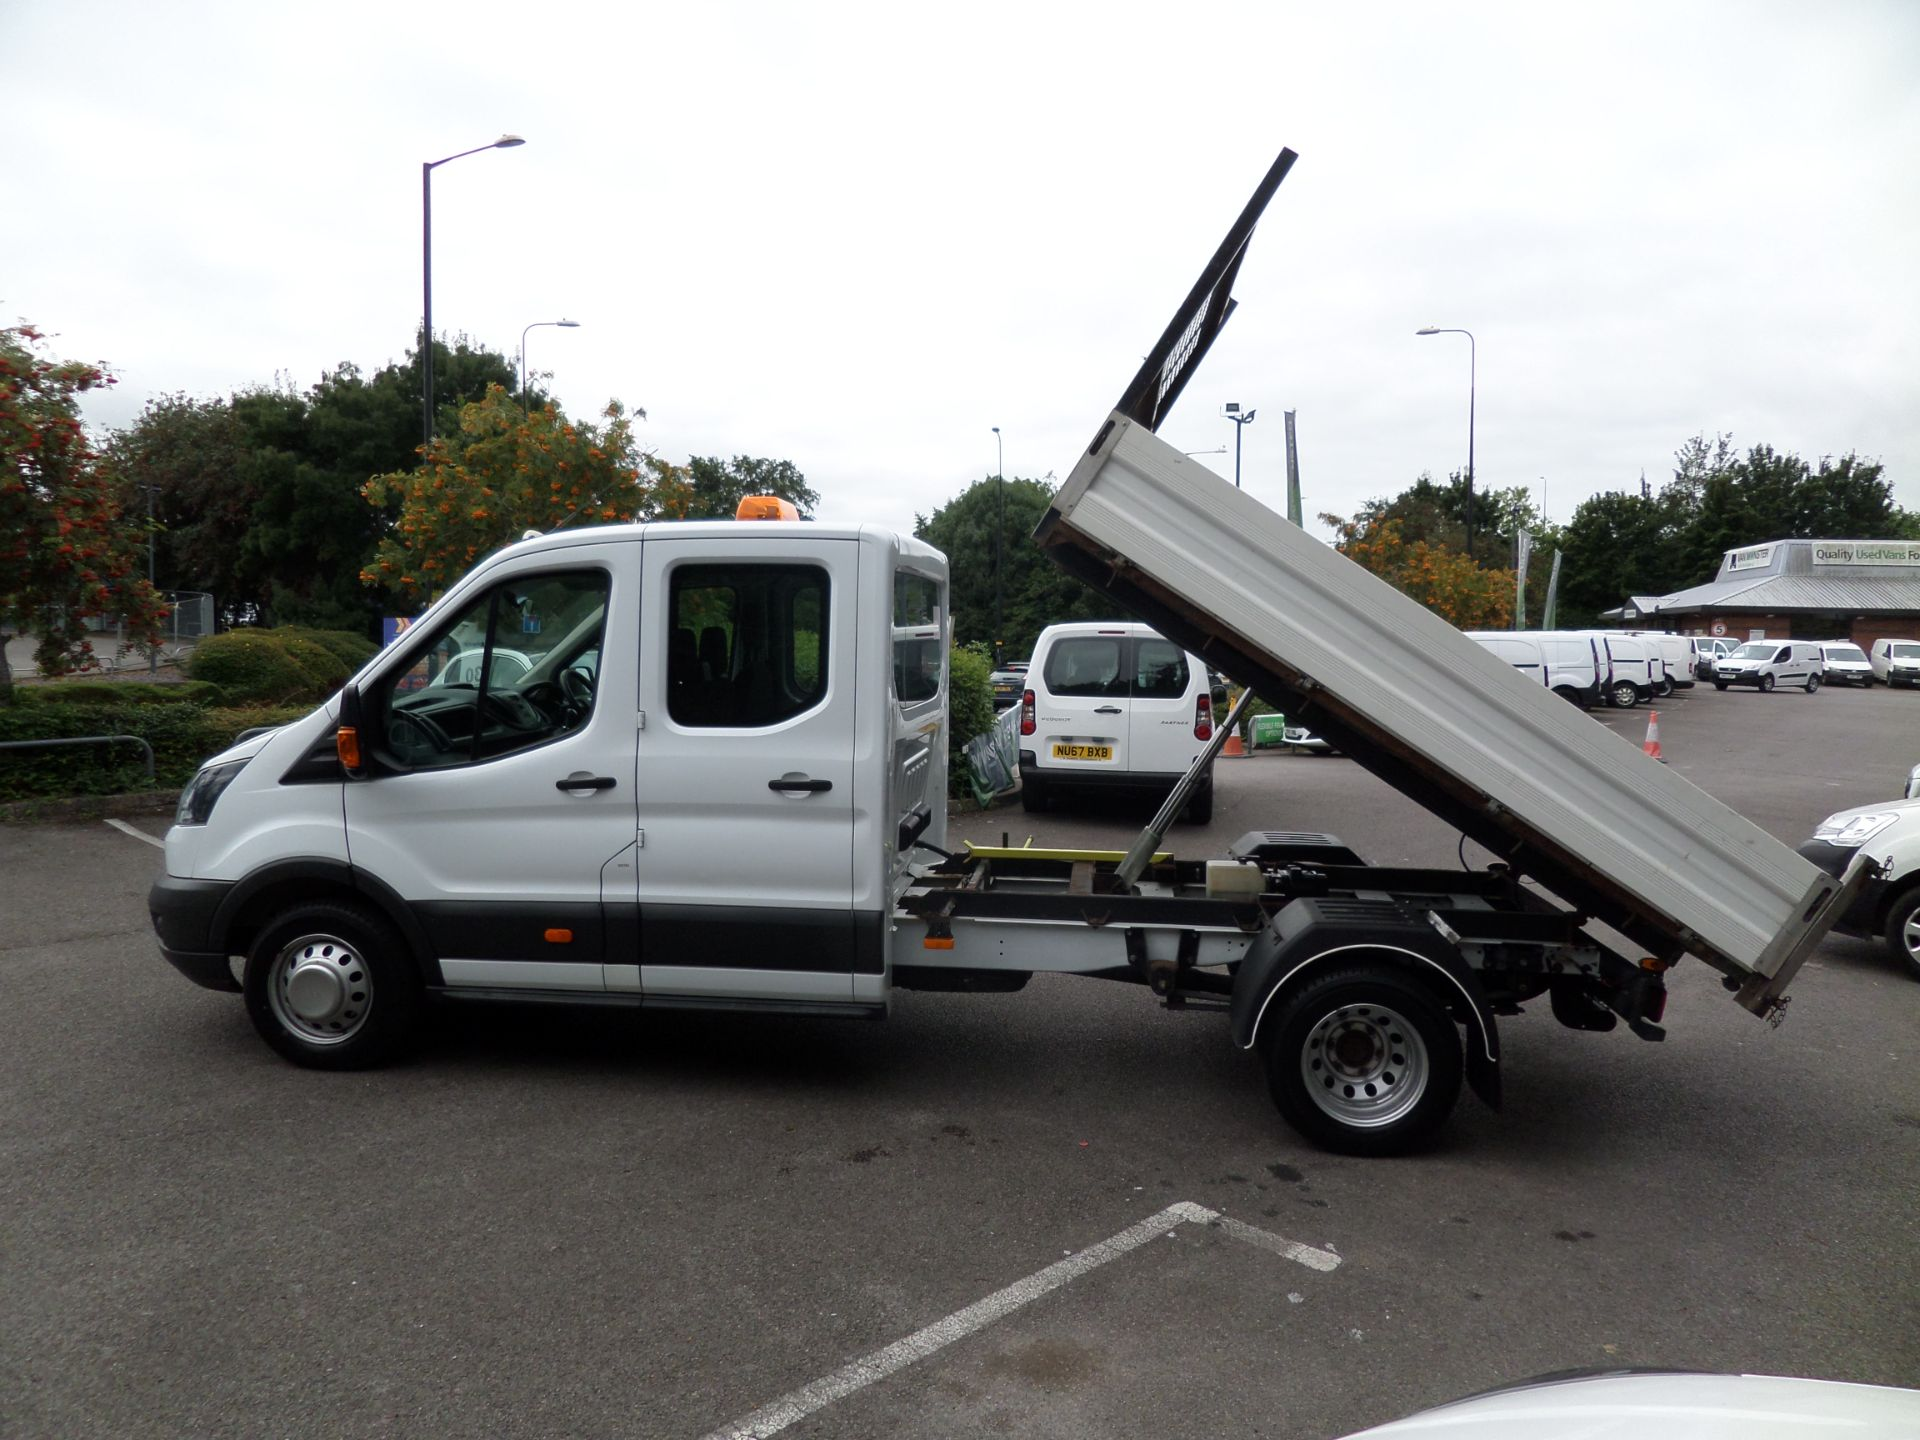 2018 Ford Transit 2.0 Tdci 130Ps Double Cab Tipper Euro 6 (FP67FCU) Image 7